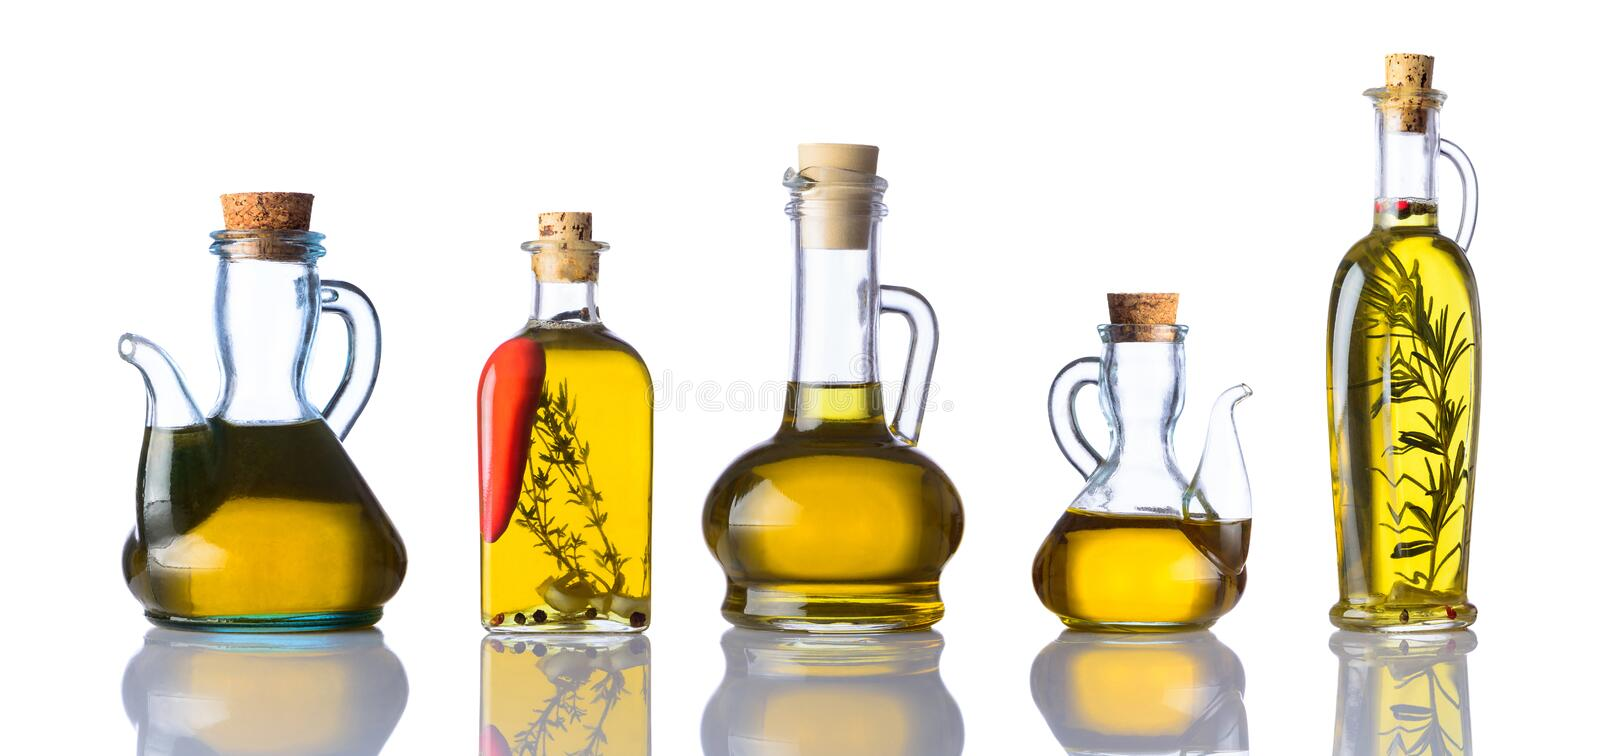 Bottles of Cooking Oils on White Background stock photo